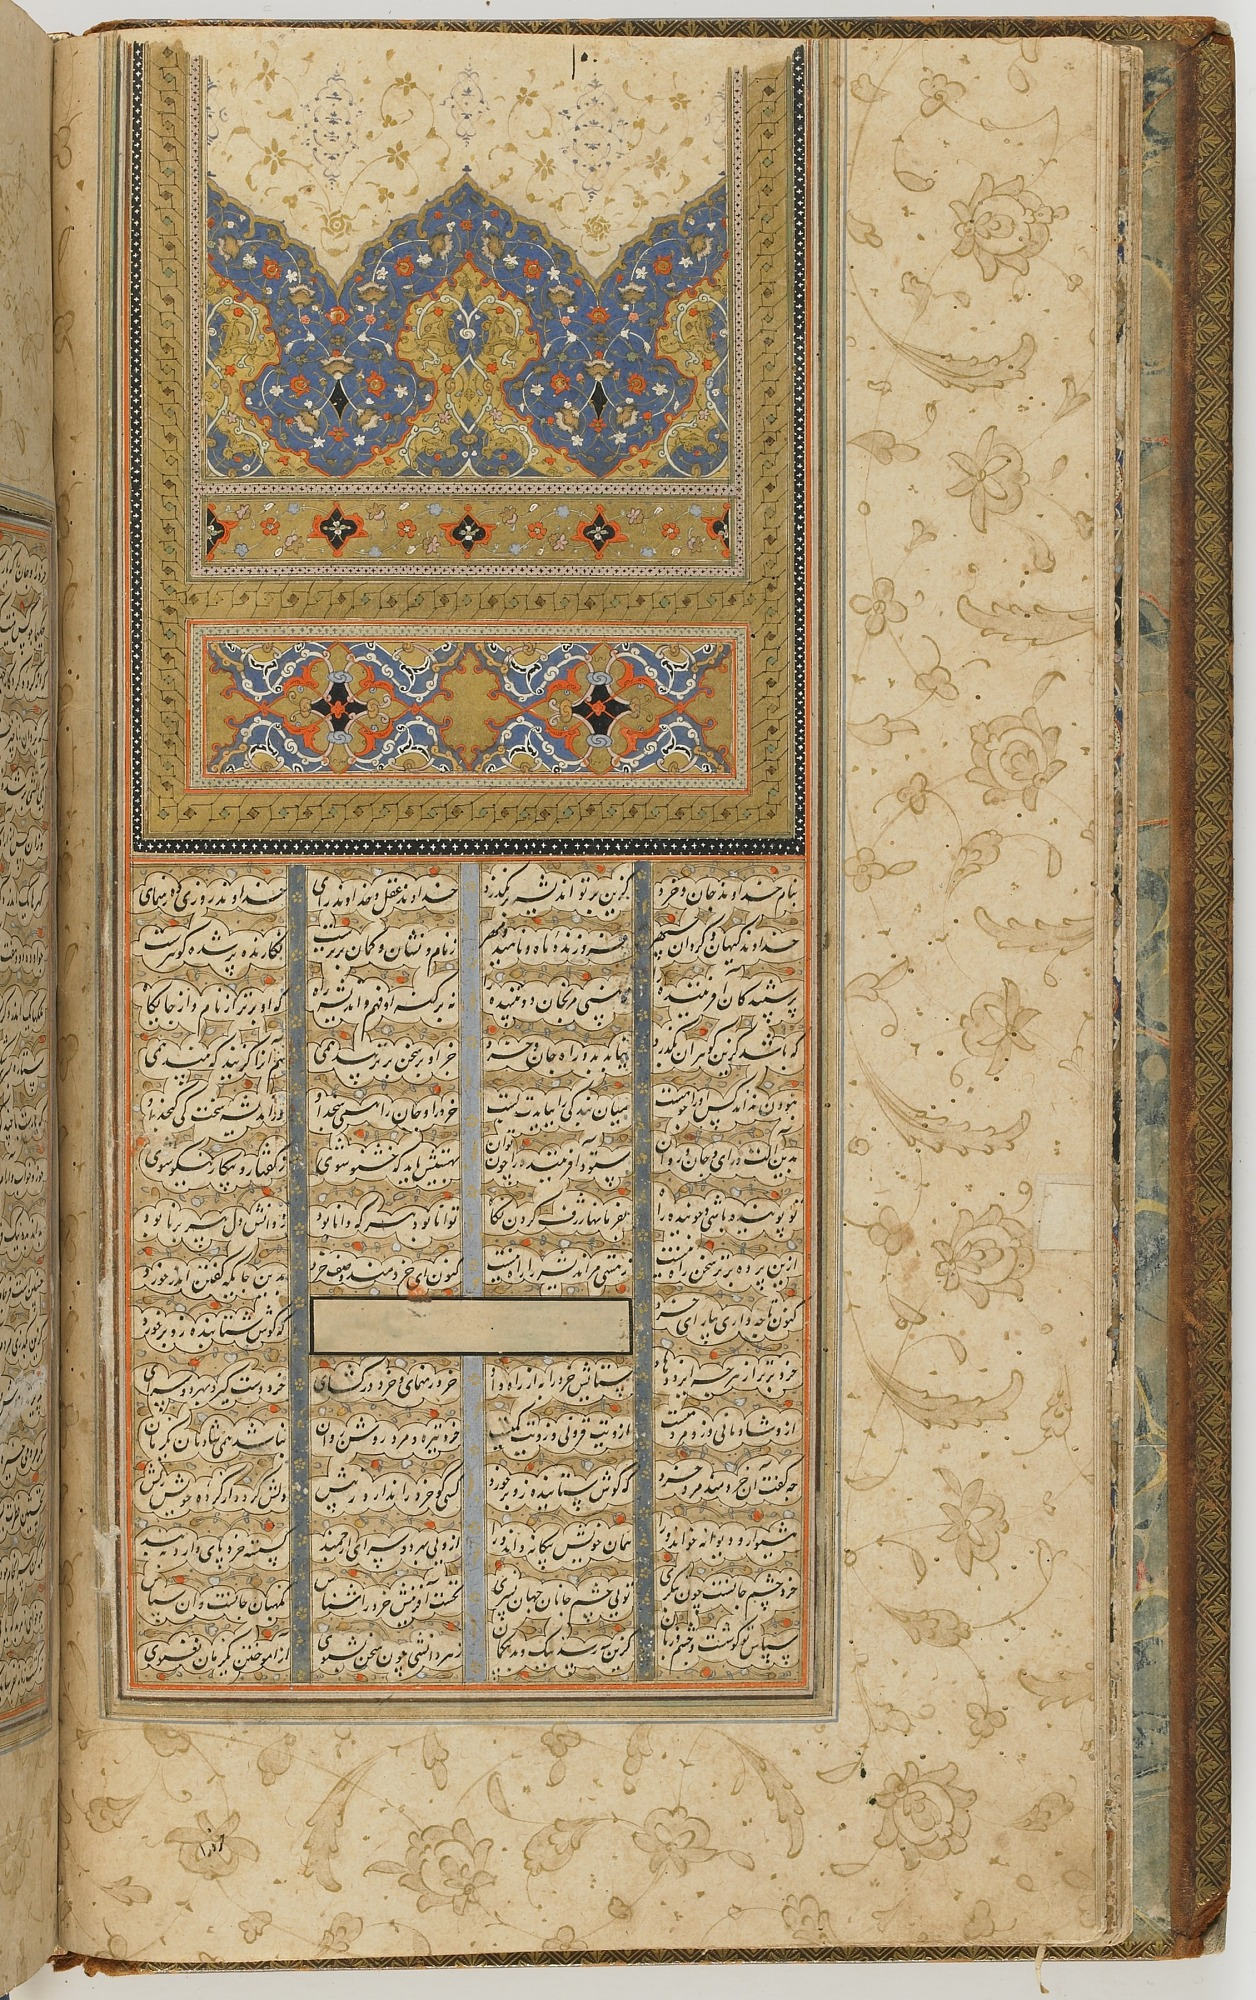 folio 9 verso: The Shahnama (Book of kings) by Firdausi (d. 1020)